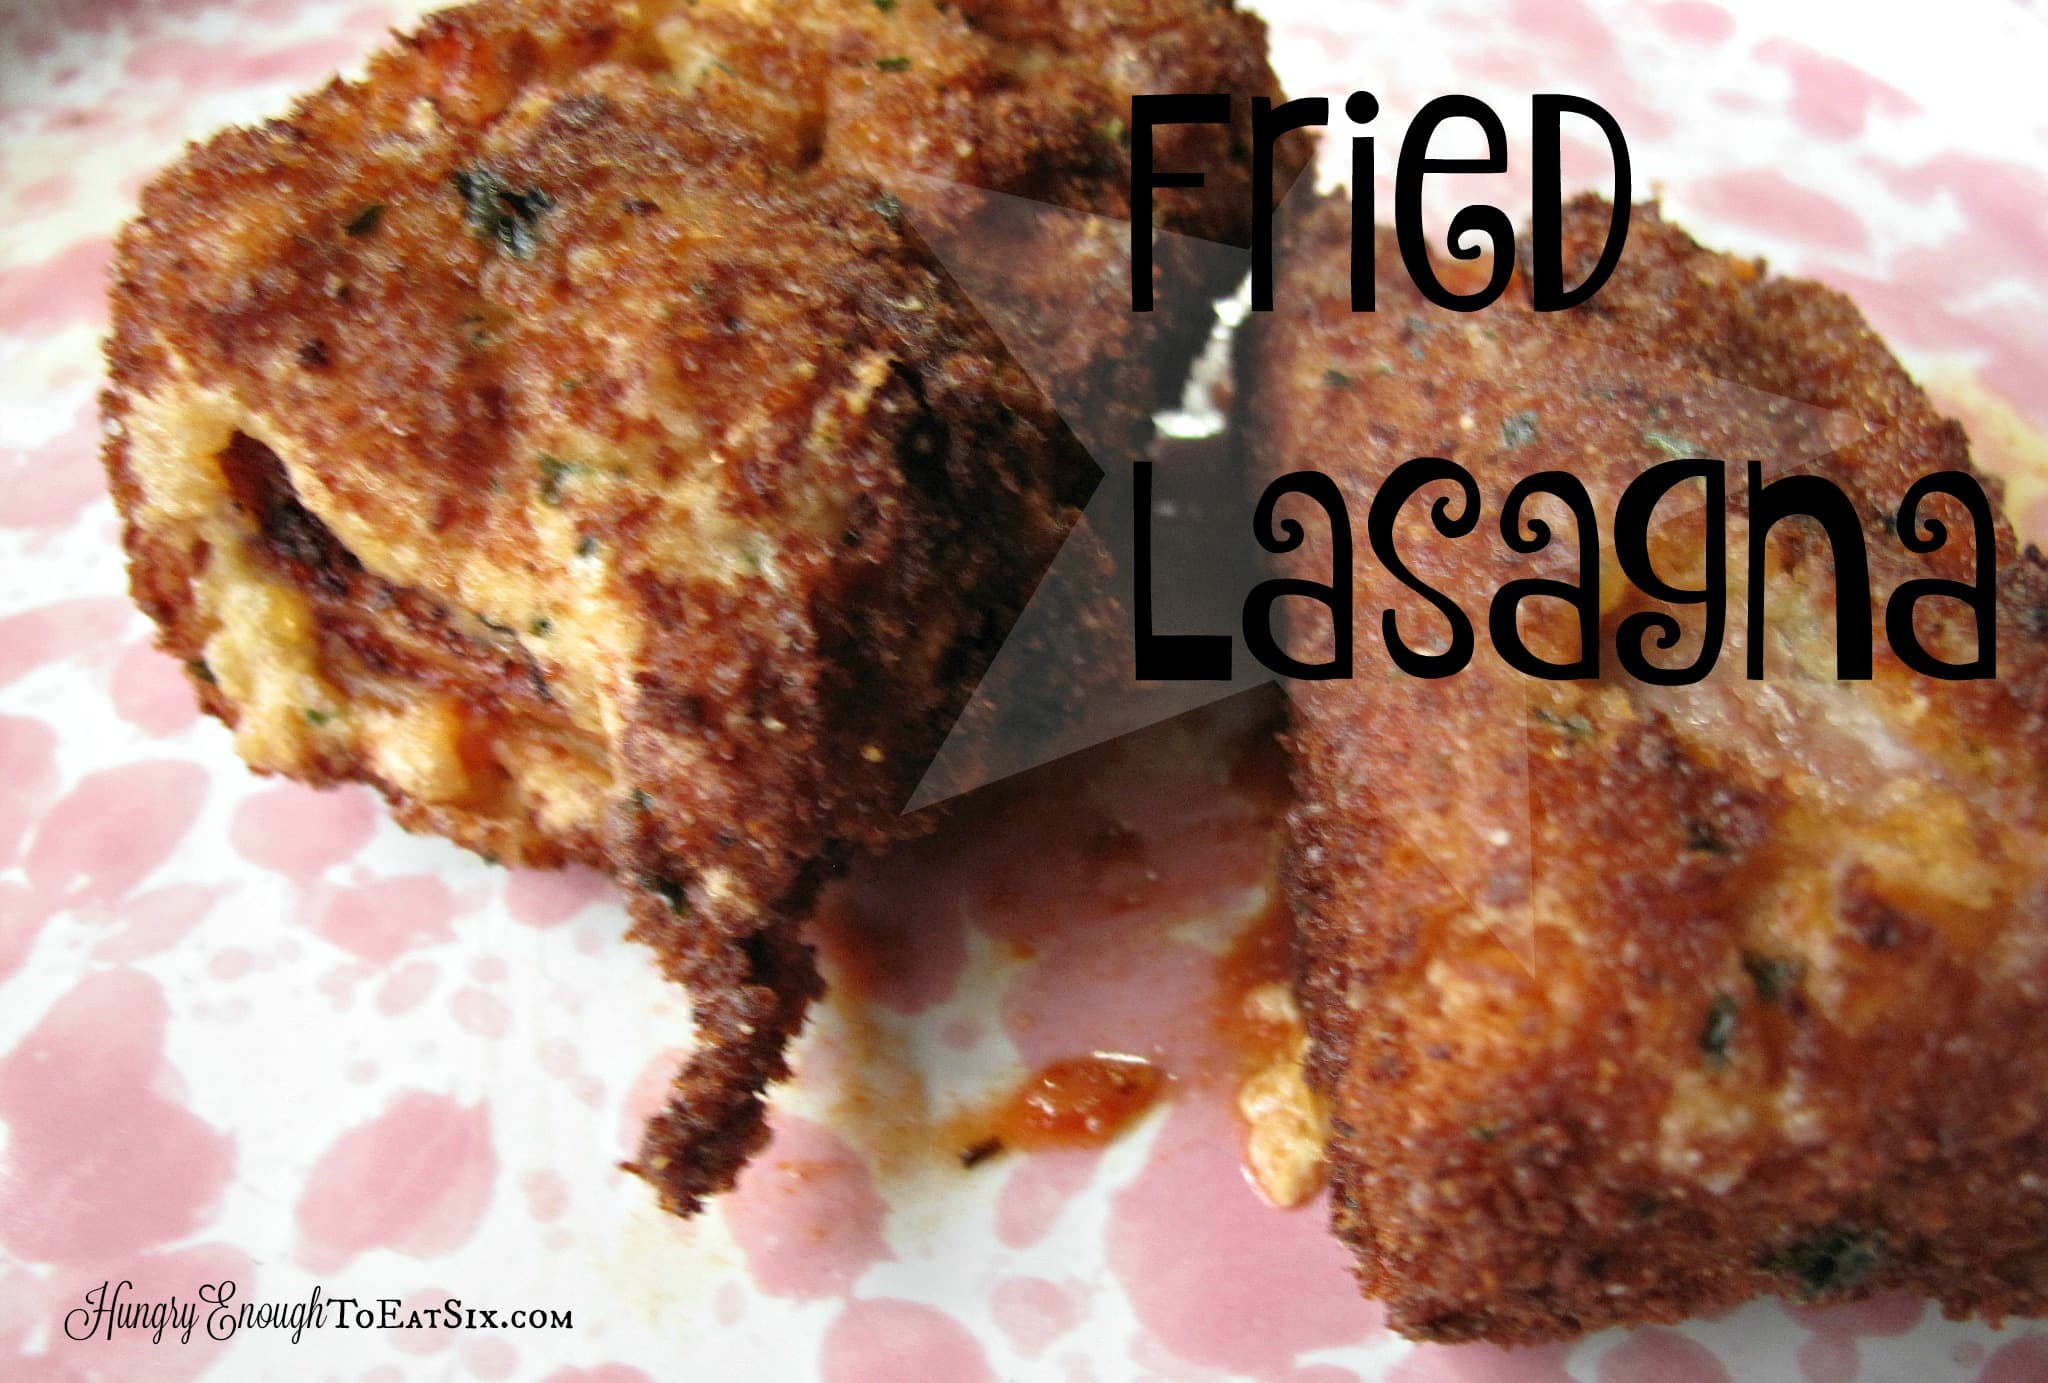 Fried Lasagna, from the Lasagna Off Competition! | HungryEnoughToEatSix.com